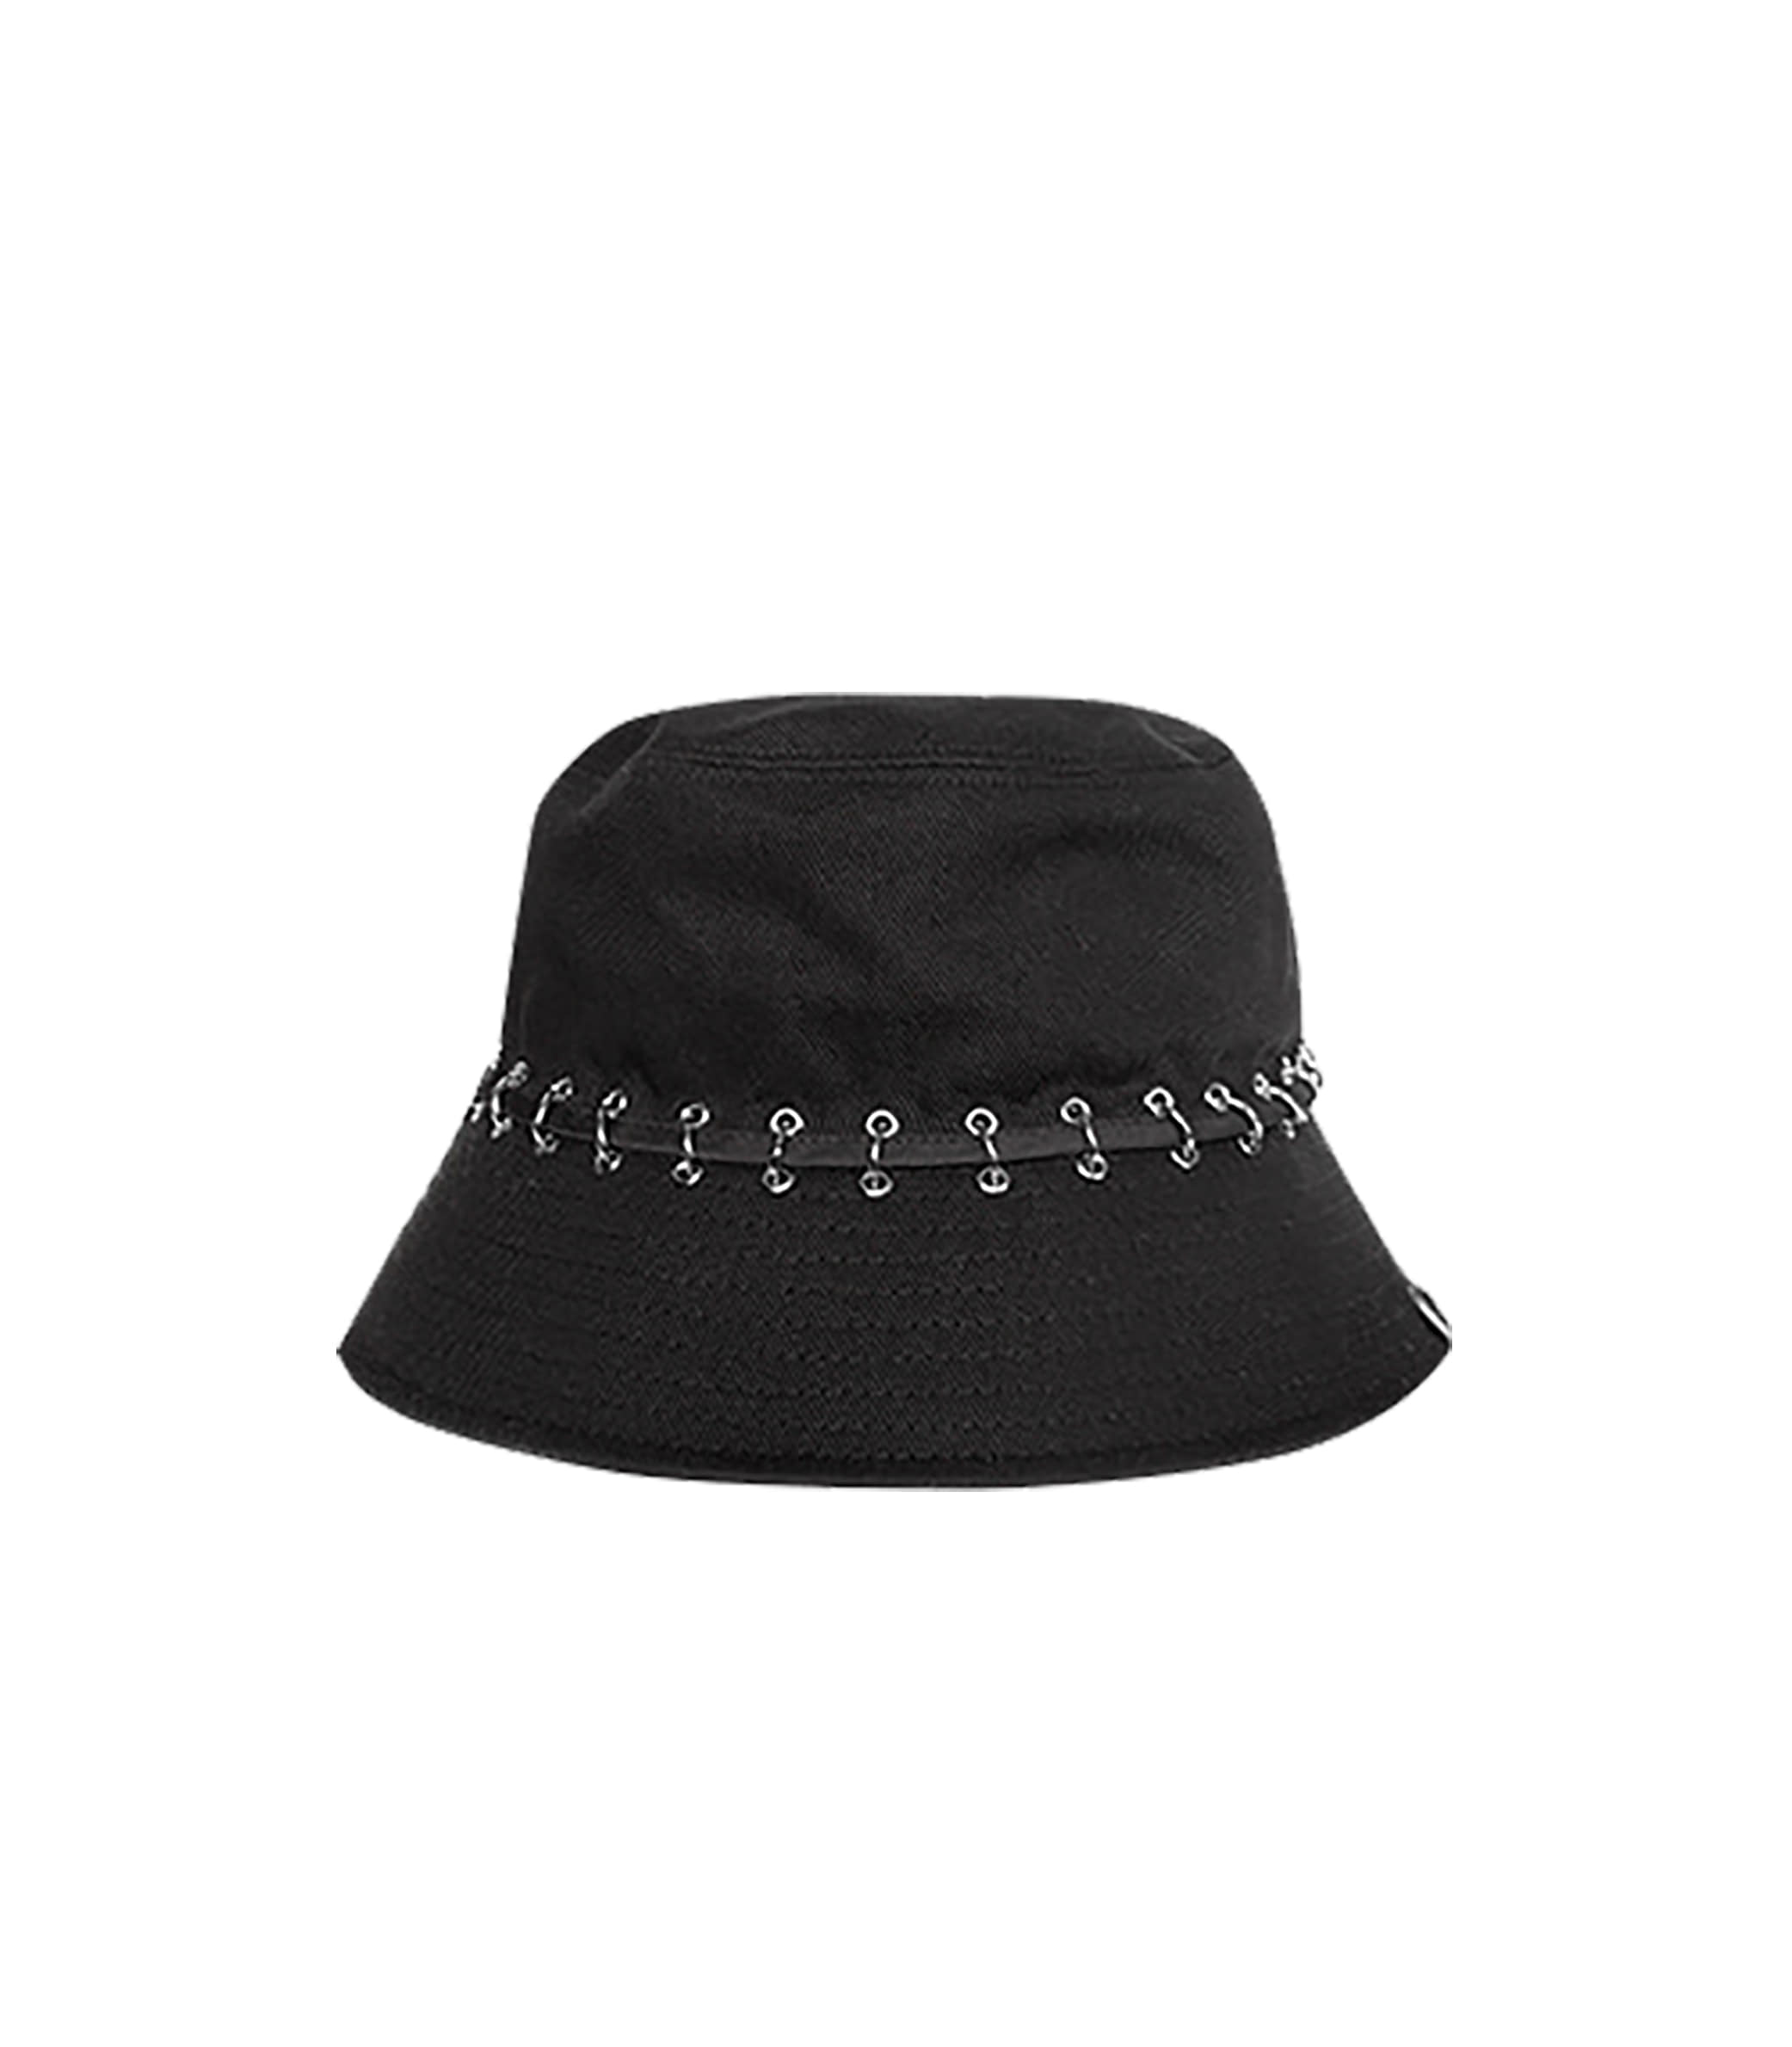 PIERCING DIVISION BUCKET HAT (BLACK)